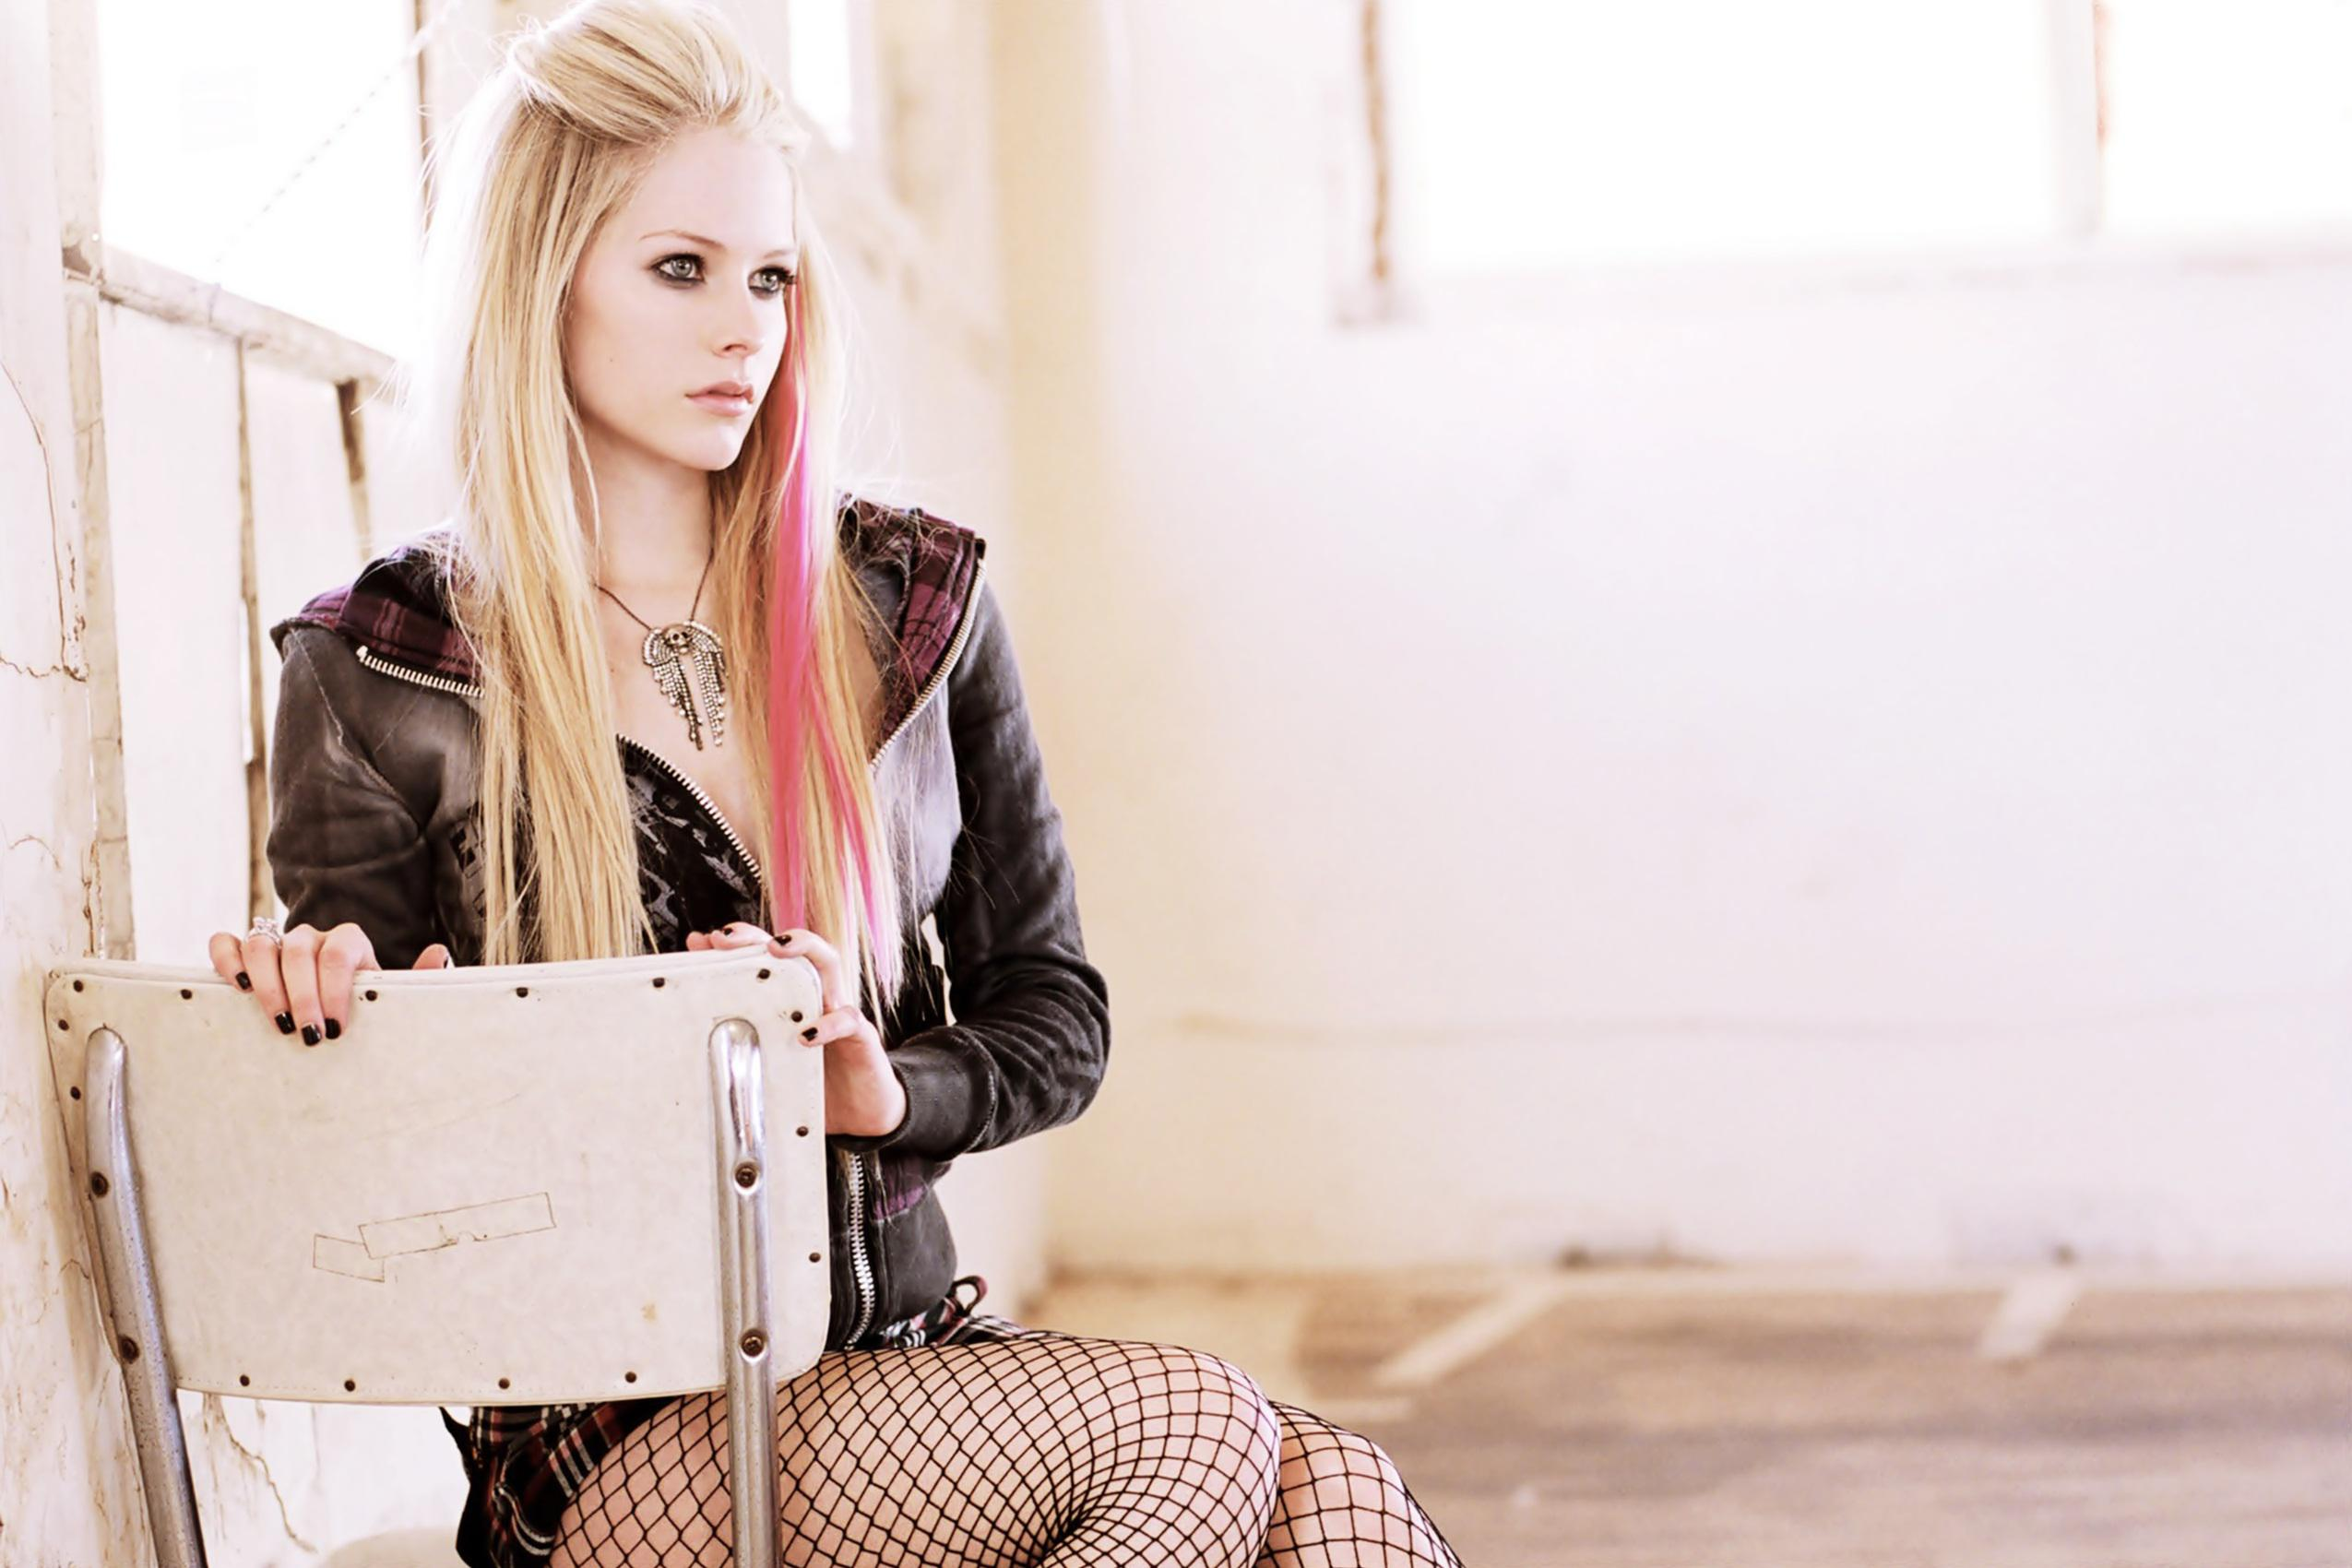 Avril Lavigne Wallpapers, Pictures, Images Avril Lavigne